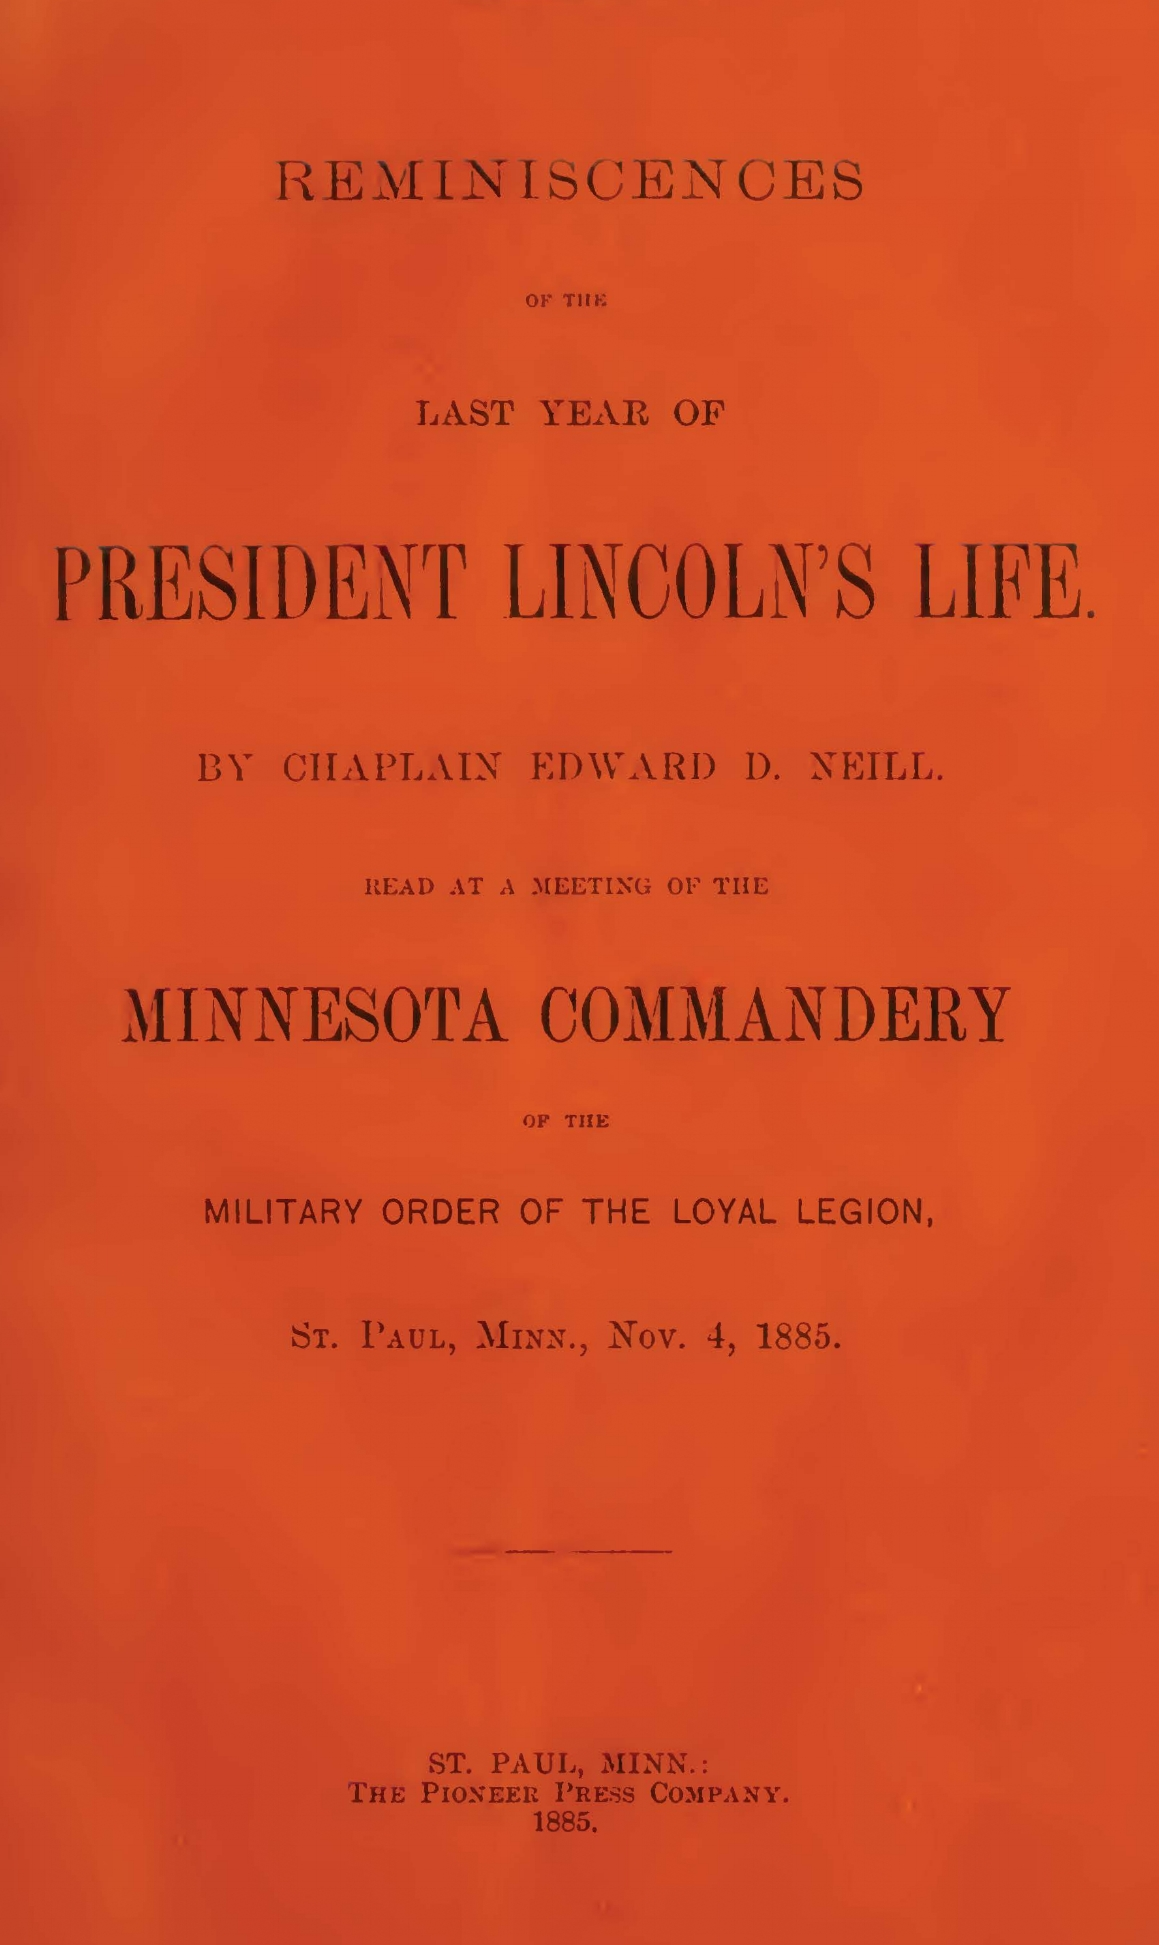 Neill, Edward Duffield, Reminiscences of the Last Year of President Lincoln's Life Title Page.jpg